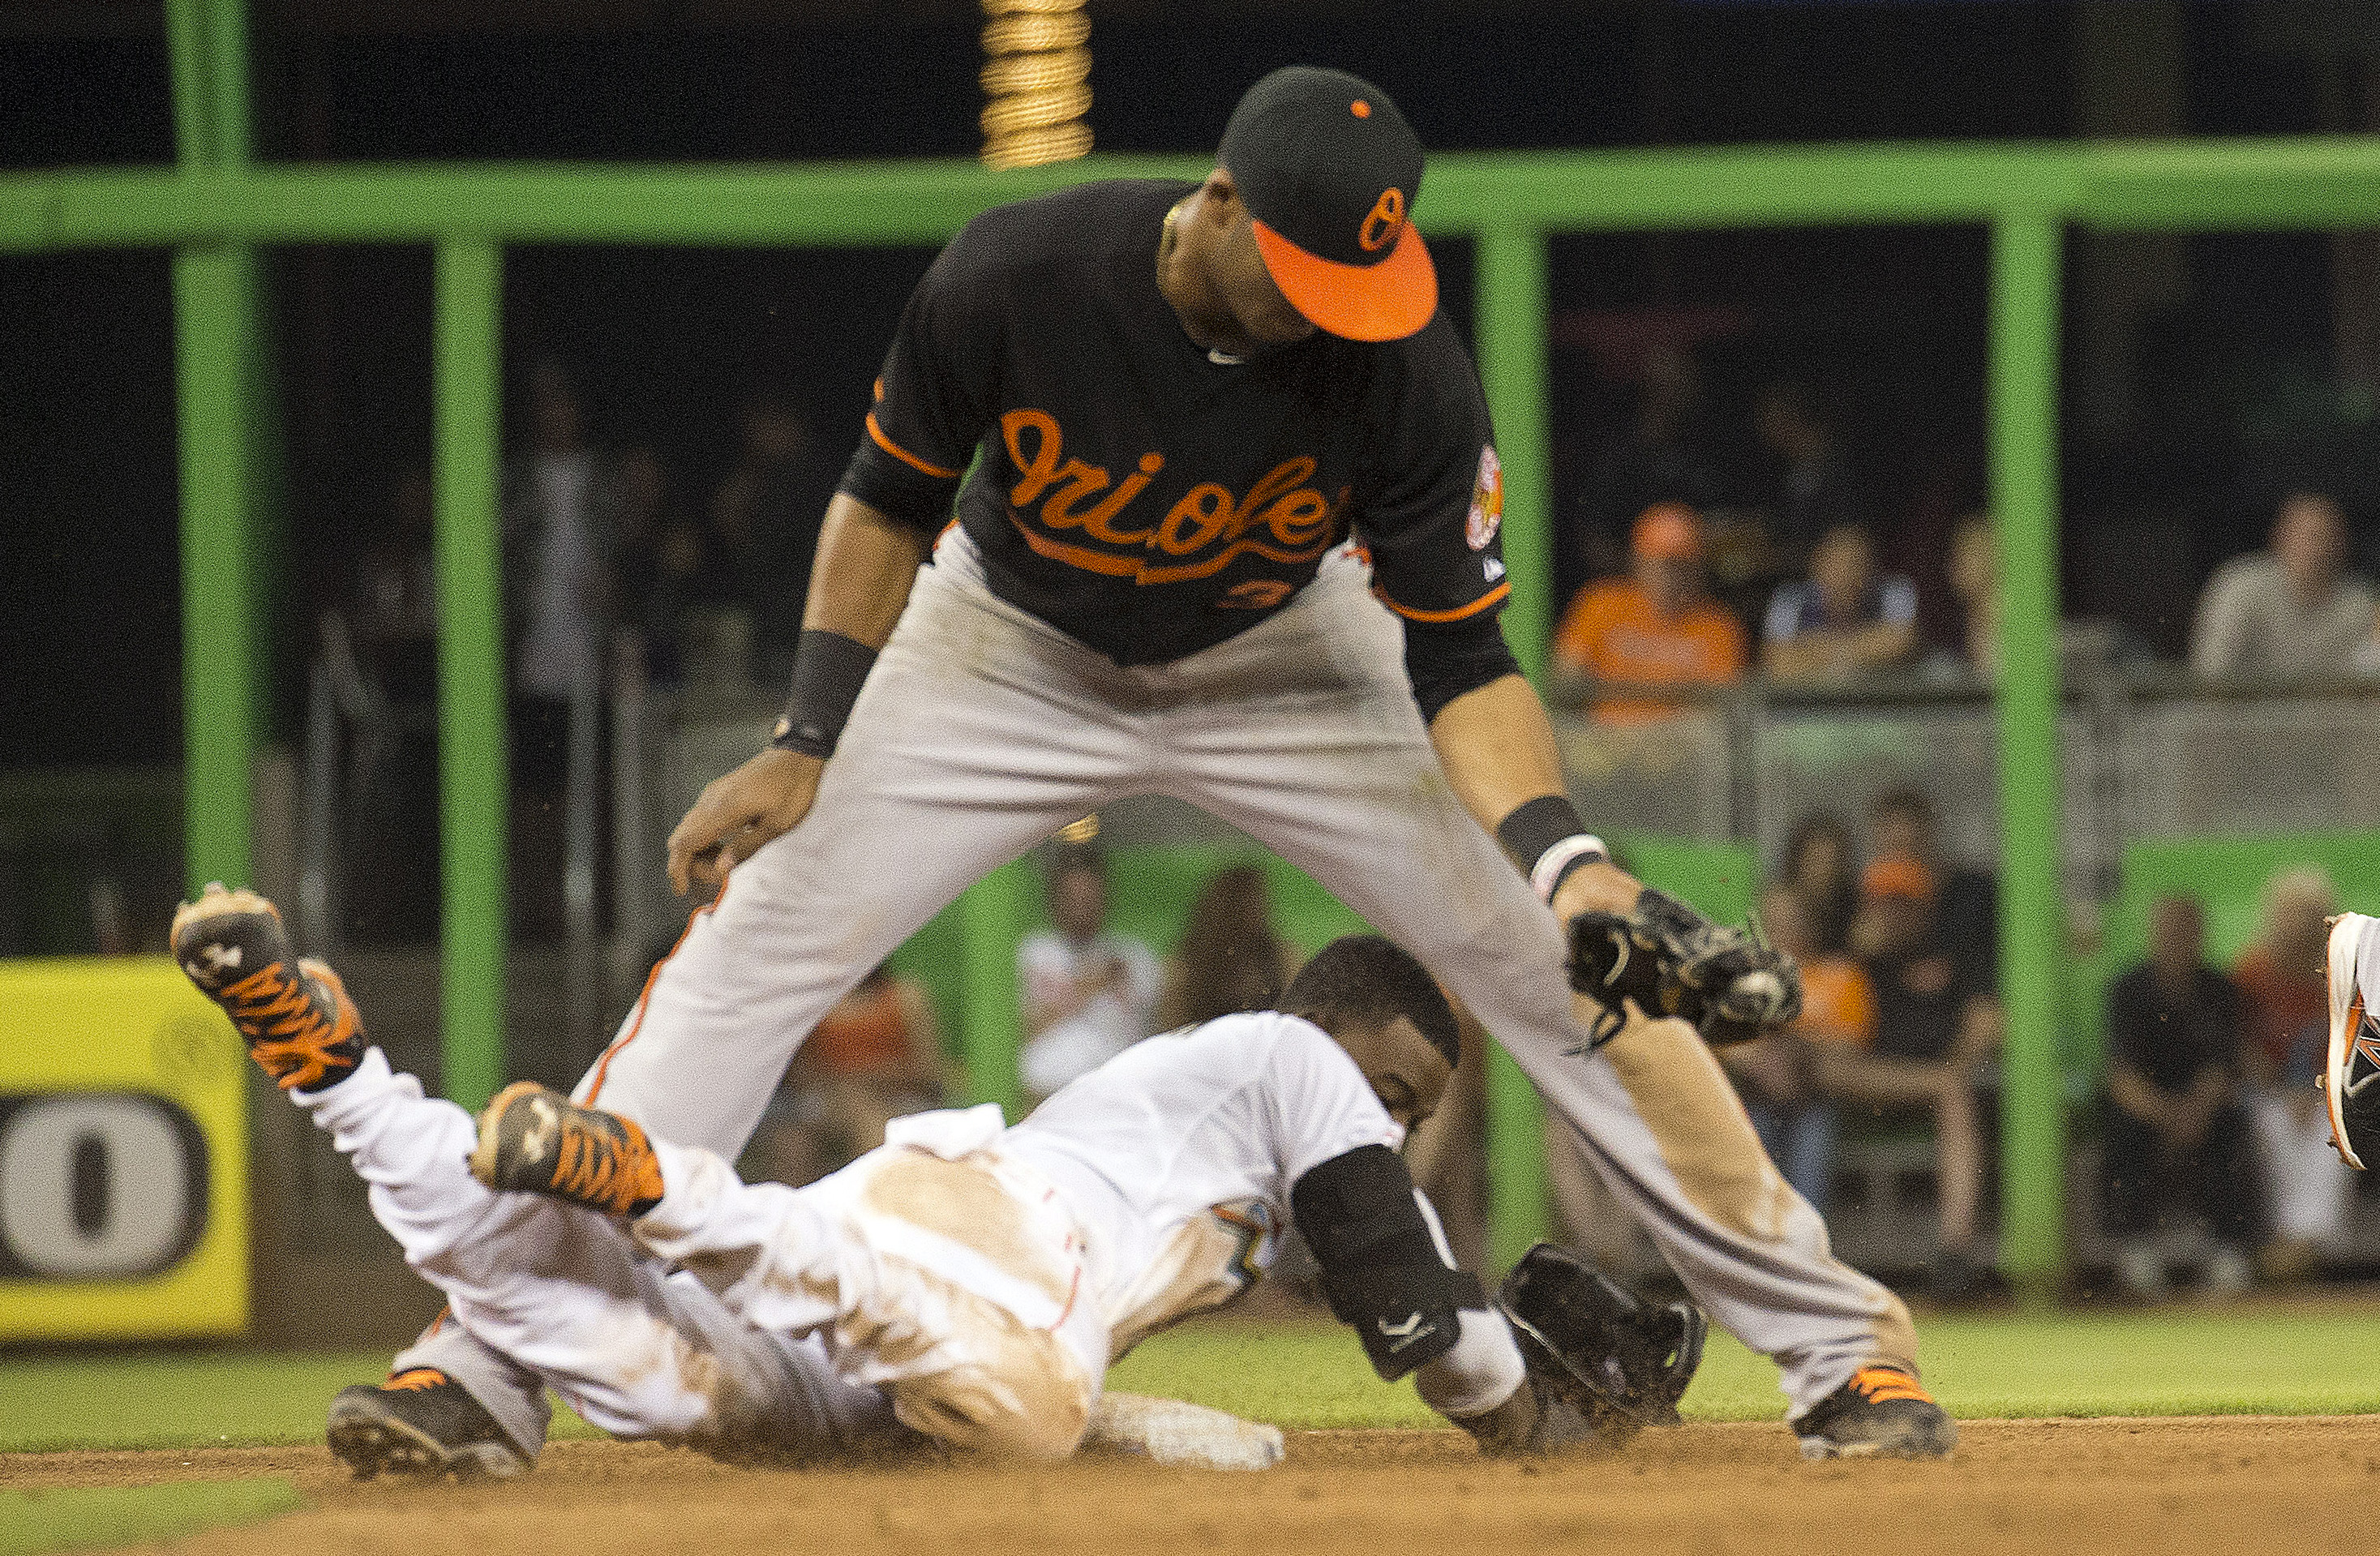 Miami Marlins' Dee Gordon, bottom, steals to second on a late throw to Baltimore Orioles' Jimmy Paredes, top, during the sixth inning of a baseball game in Miami, Friday, May 22, 2015. (AP Photo/J Pat Carter)